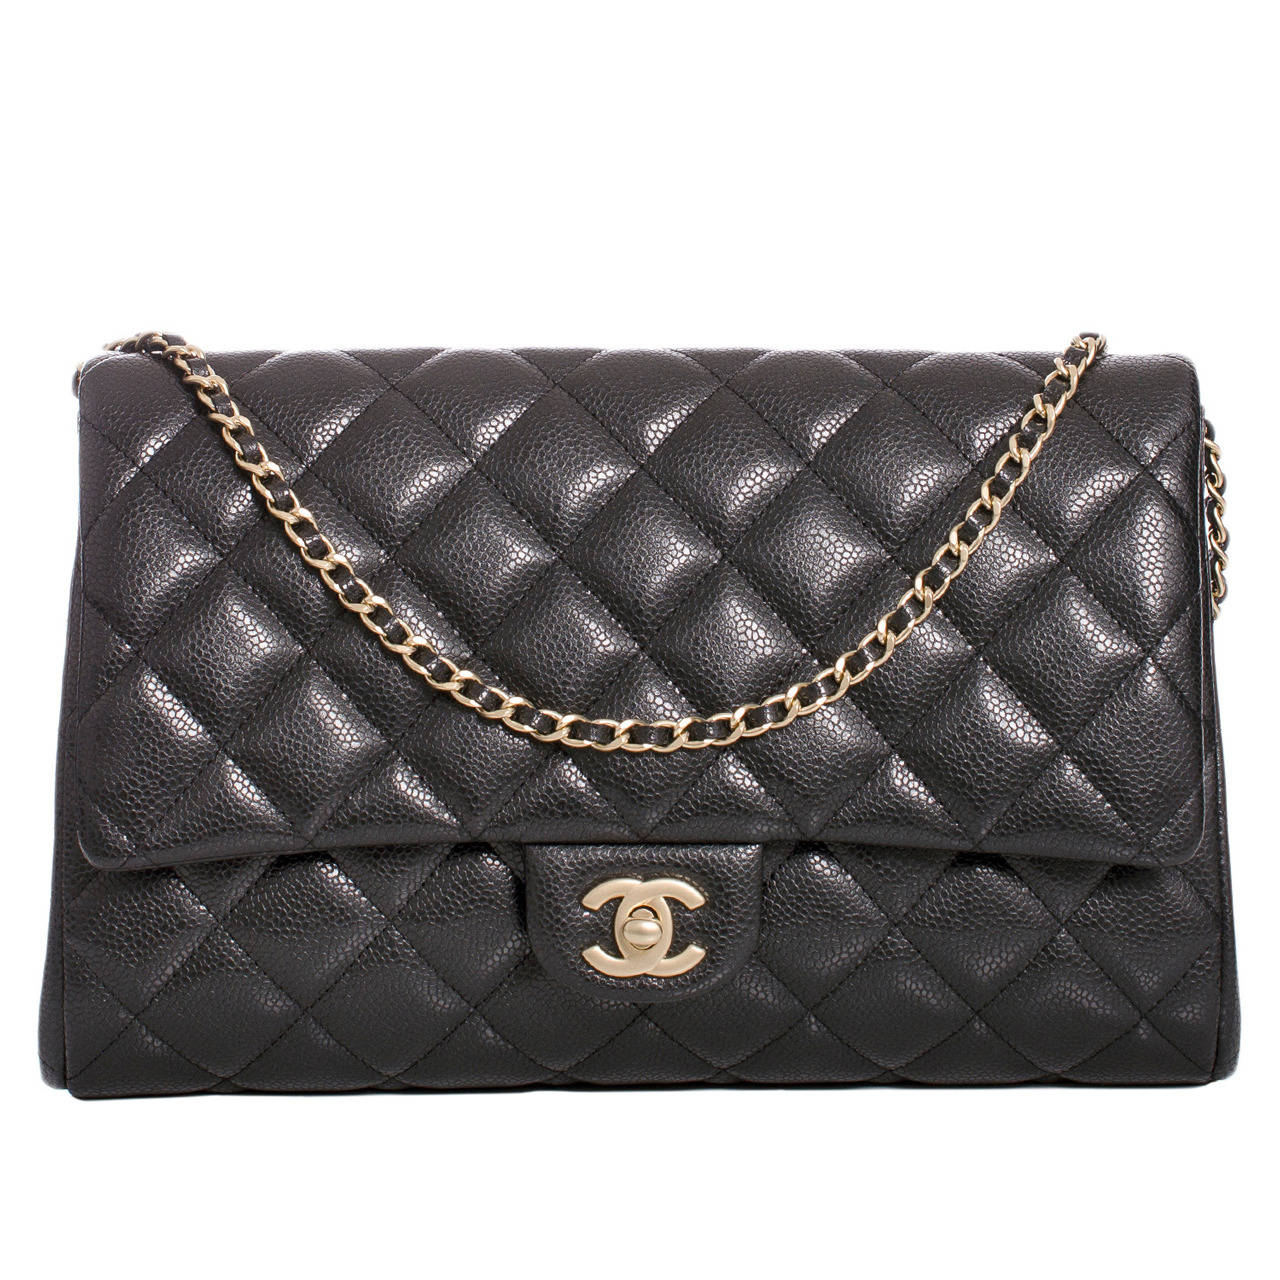 Chanel Black Quilted Caviar New Clutch With Chain For Sale